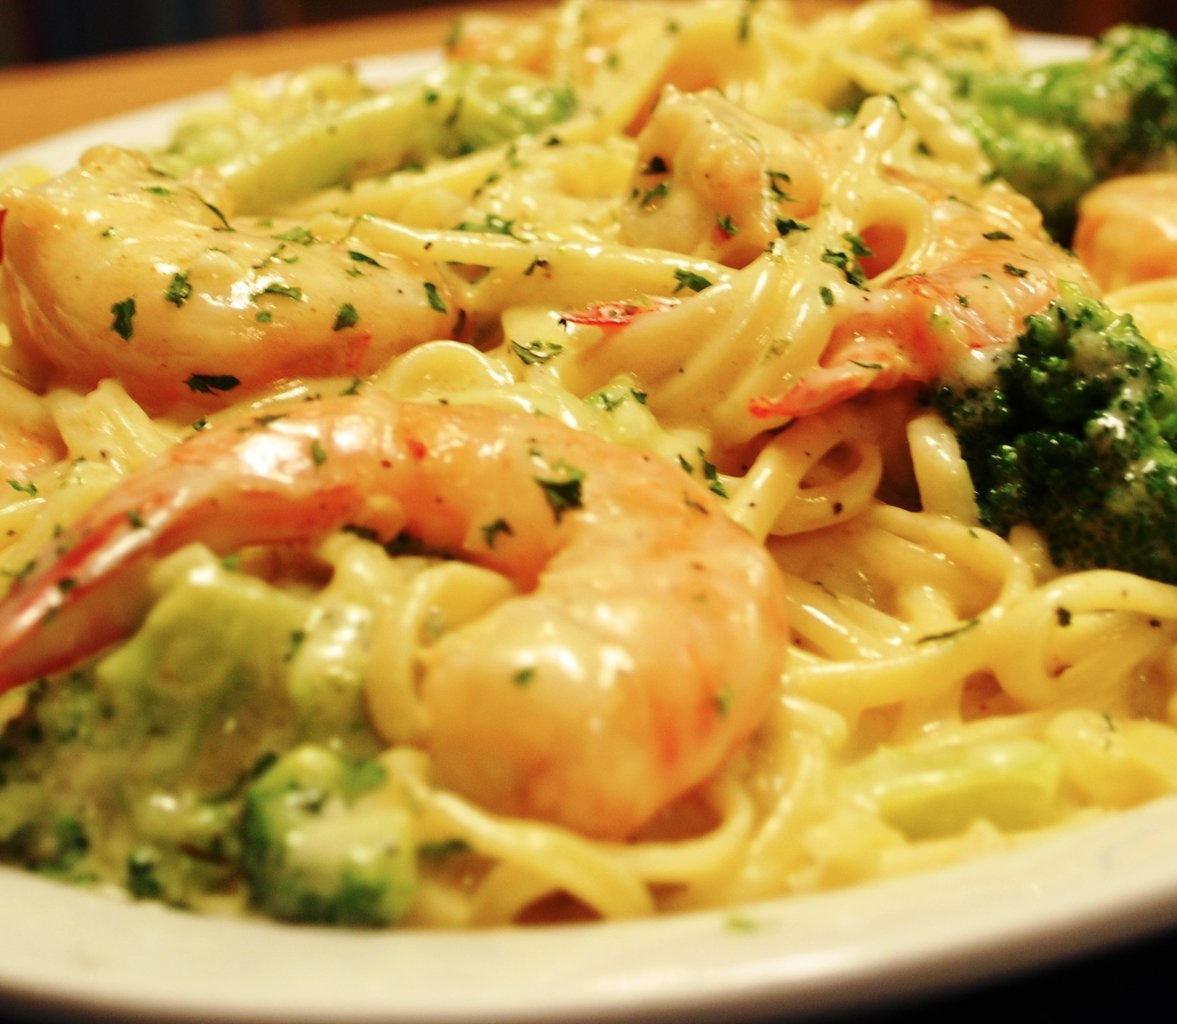 shrimp and broccoli alfredo shrimp broccoli fettuccine broccoli shrimp ...